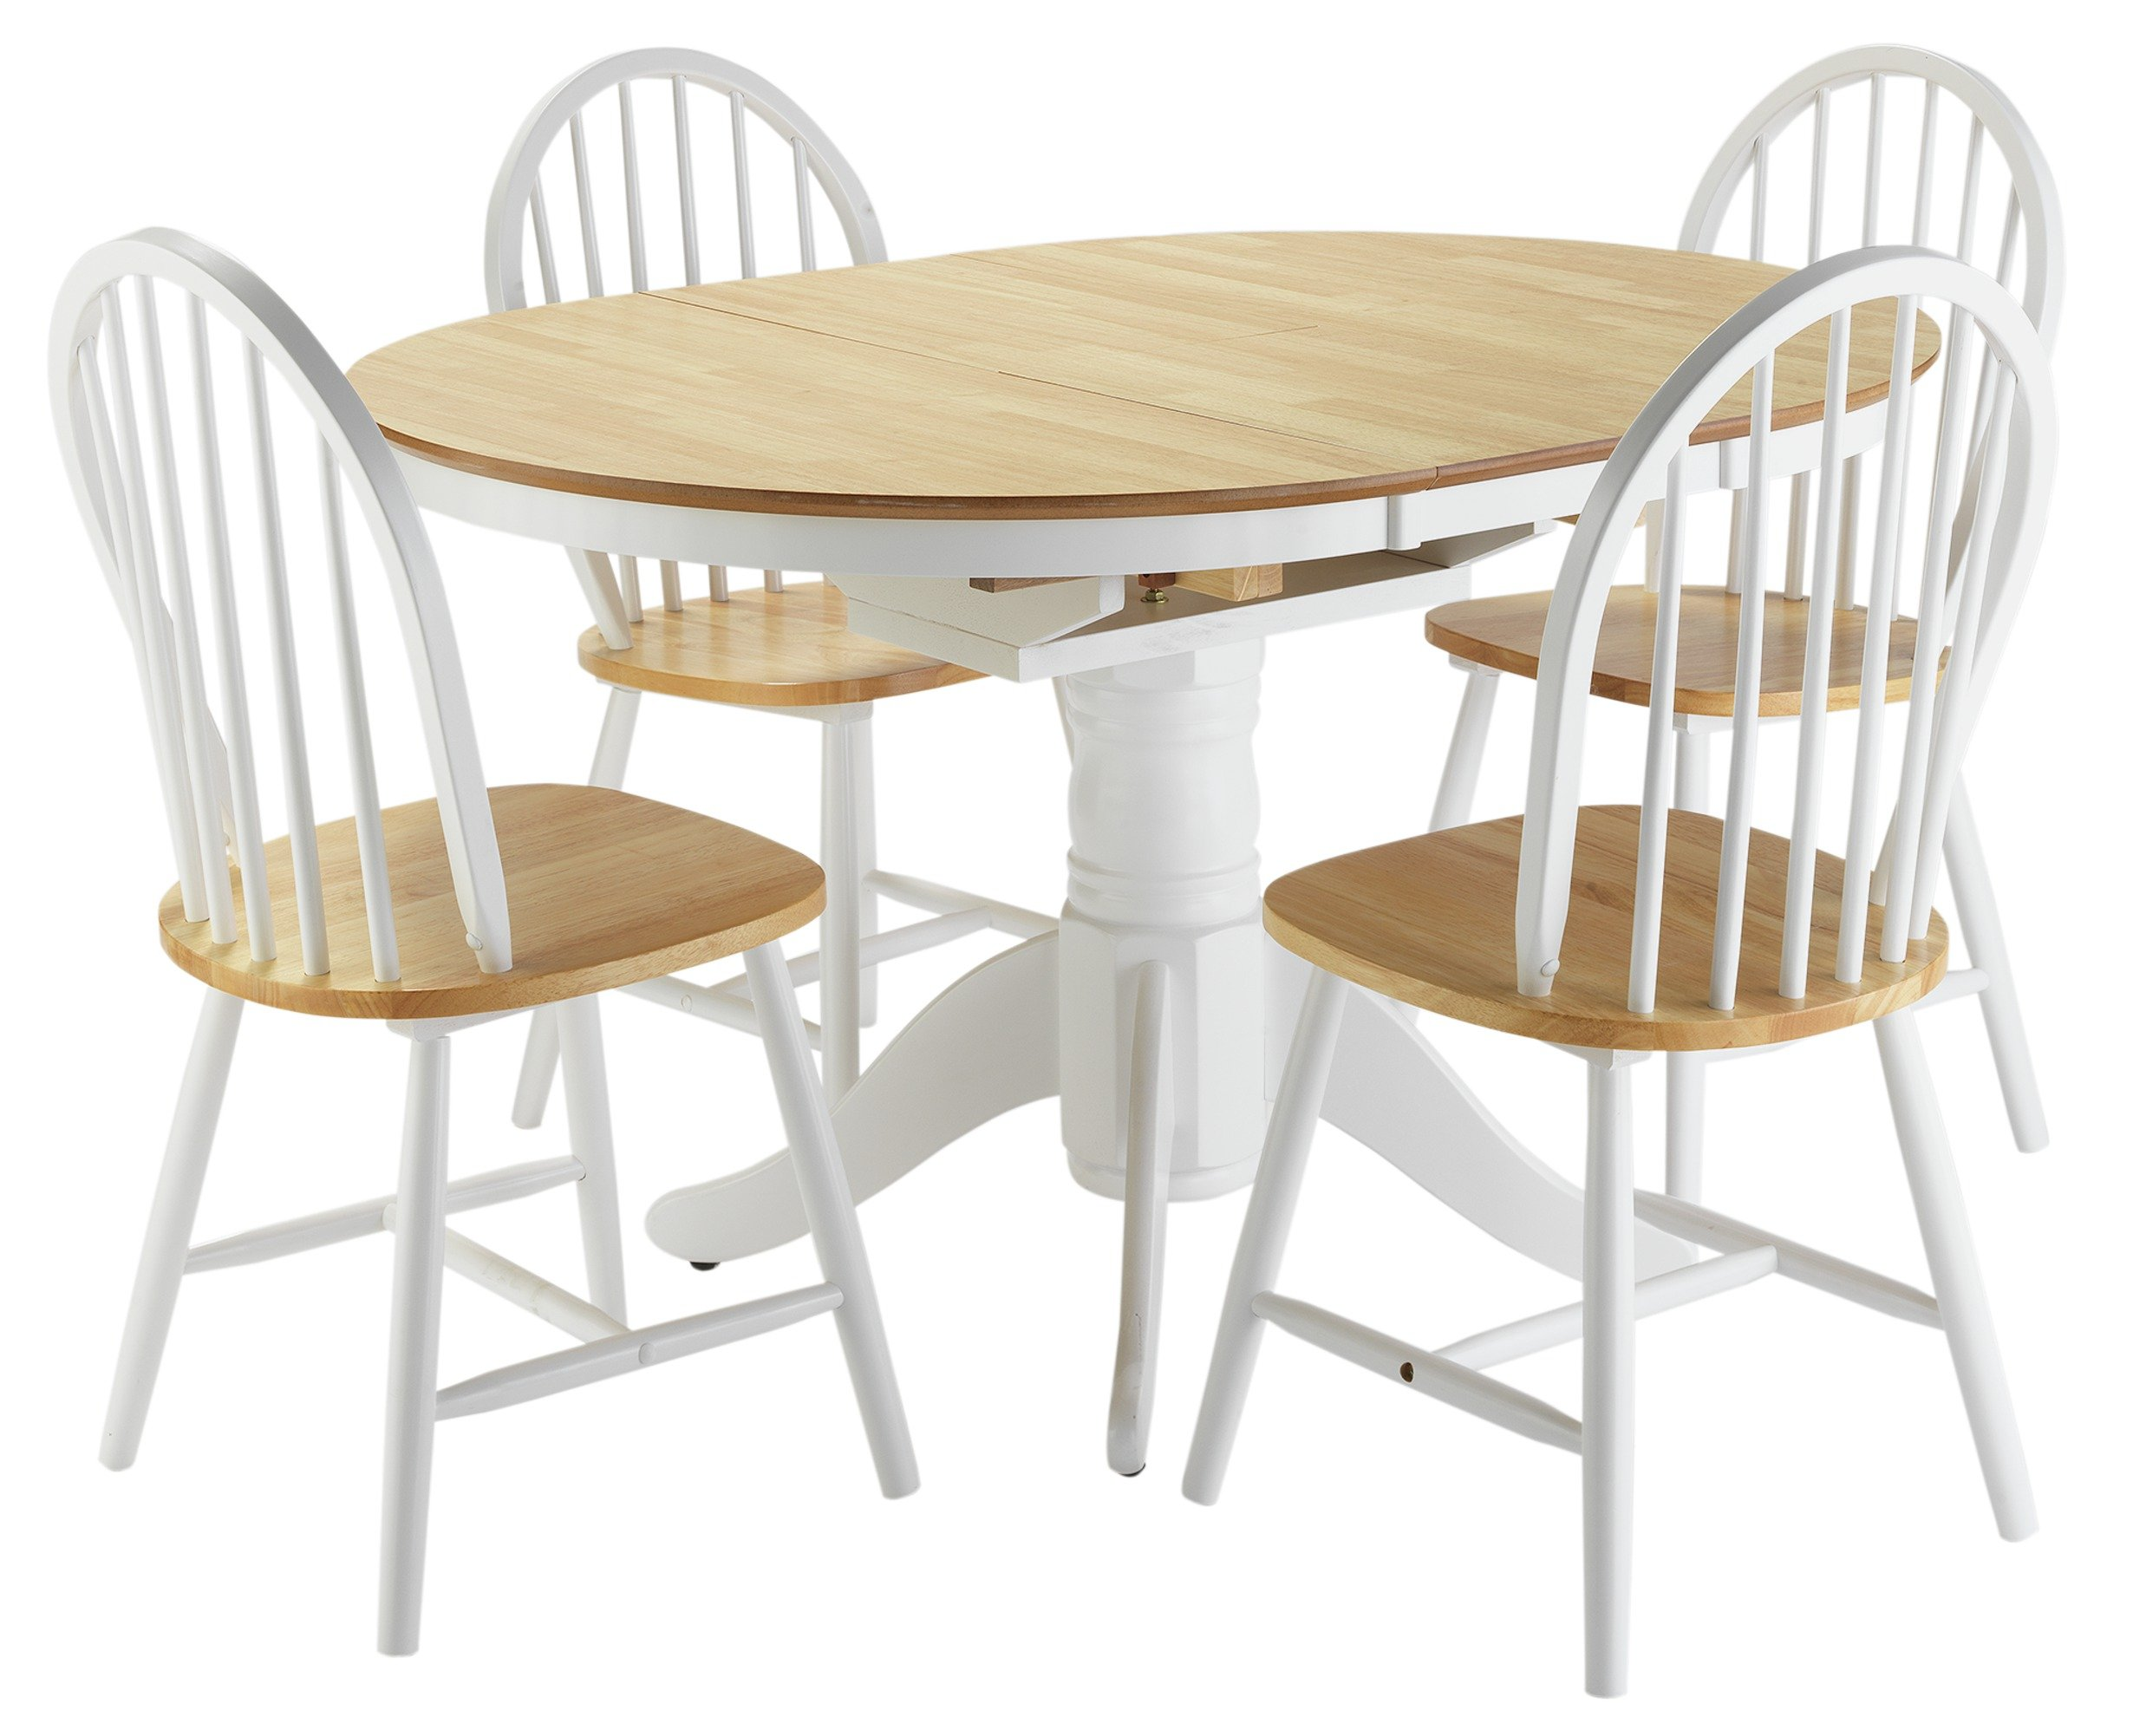 kentucky two tone fixed top dining table and 4 chairs. Black Bedroom Furniture Sets. Home Design Ideas